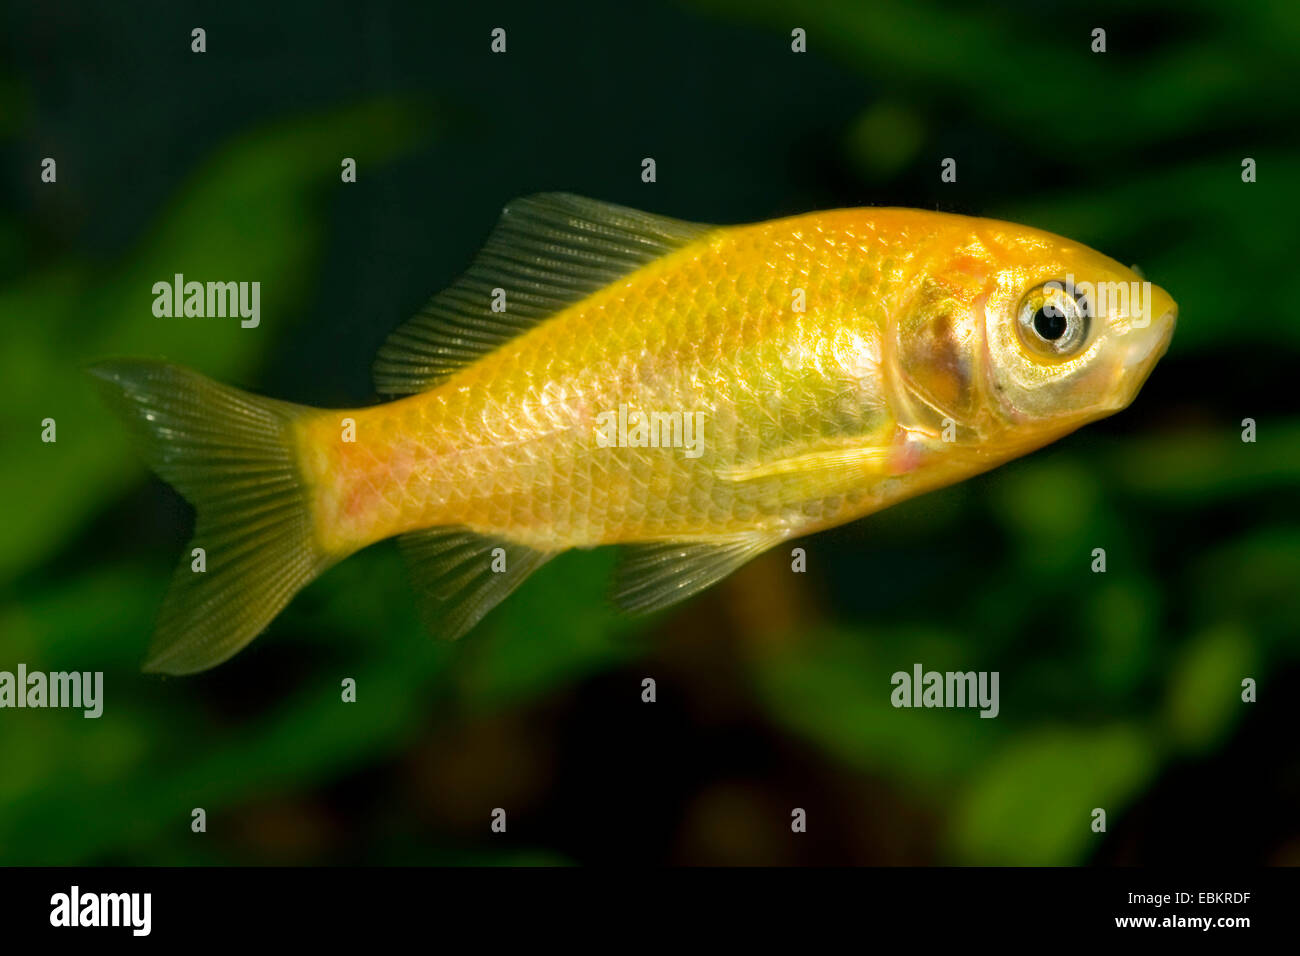 Goldfish, Common carp, Yellow goldfish (Carassius auratus), breeding form Yellow - Stock Image